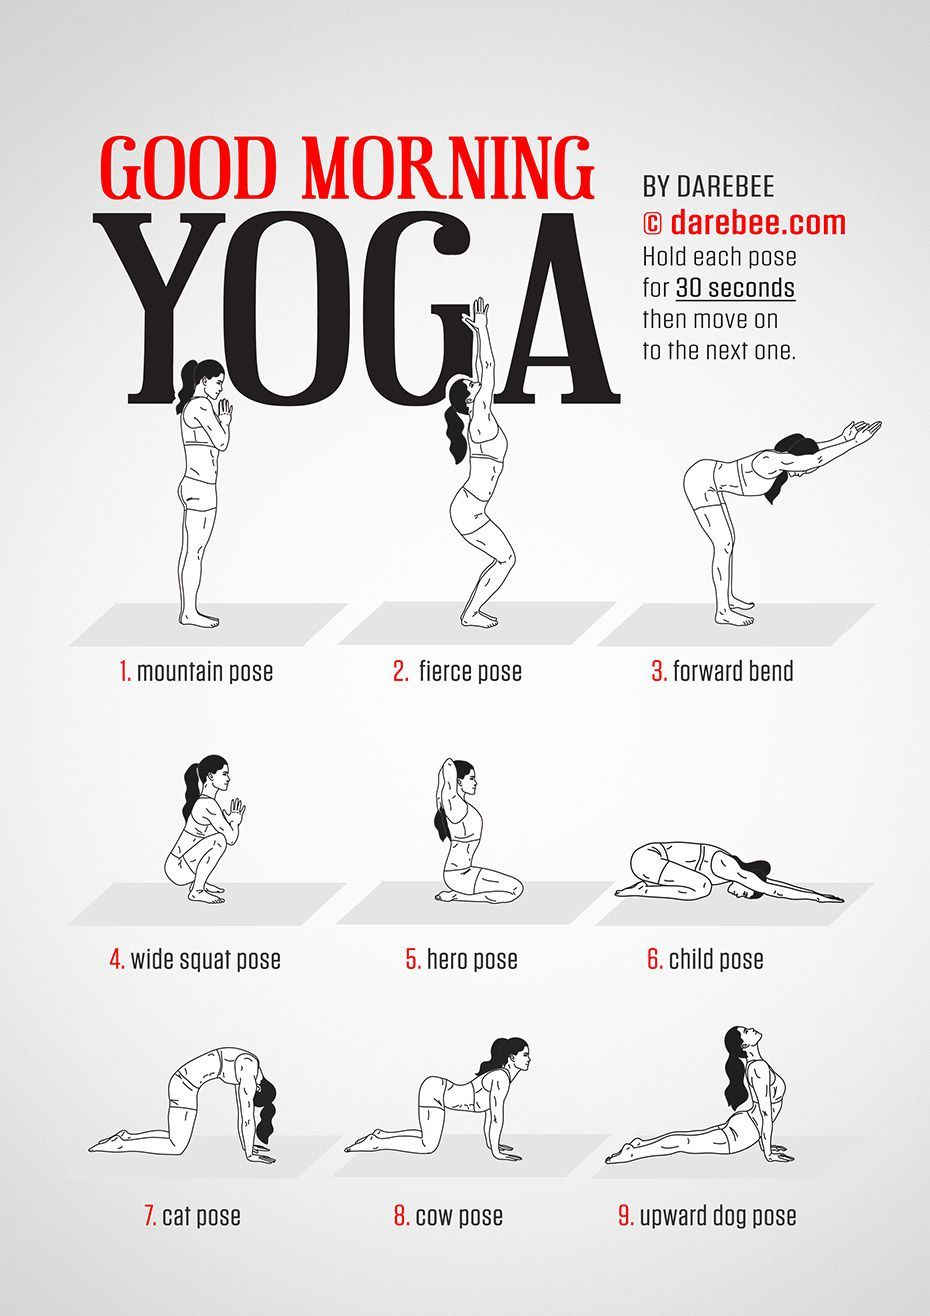 Good Morning Yoga workout by #Darebee #workoutwednesday #workout #fitness